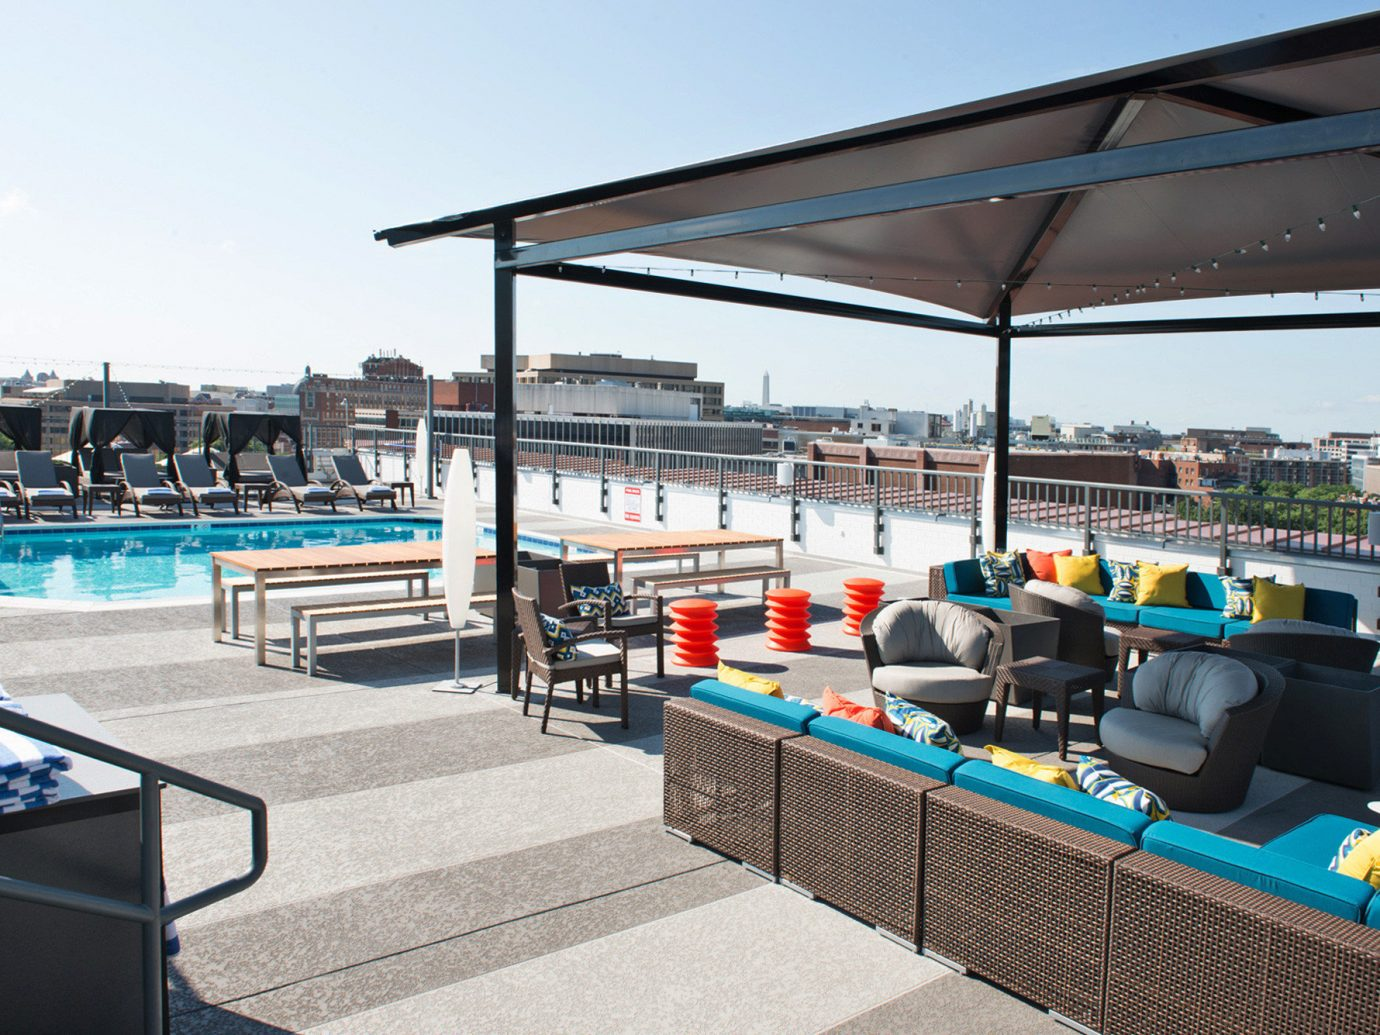 Bar Boutique City Hip Hotels Lounge Pool Rooftop sky outdoor vehicle restaurant dock